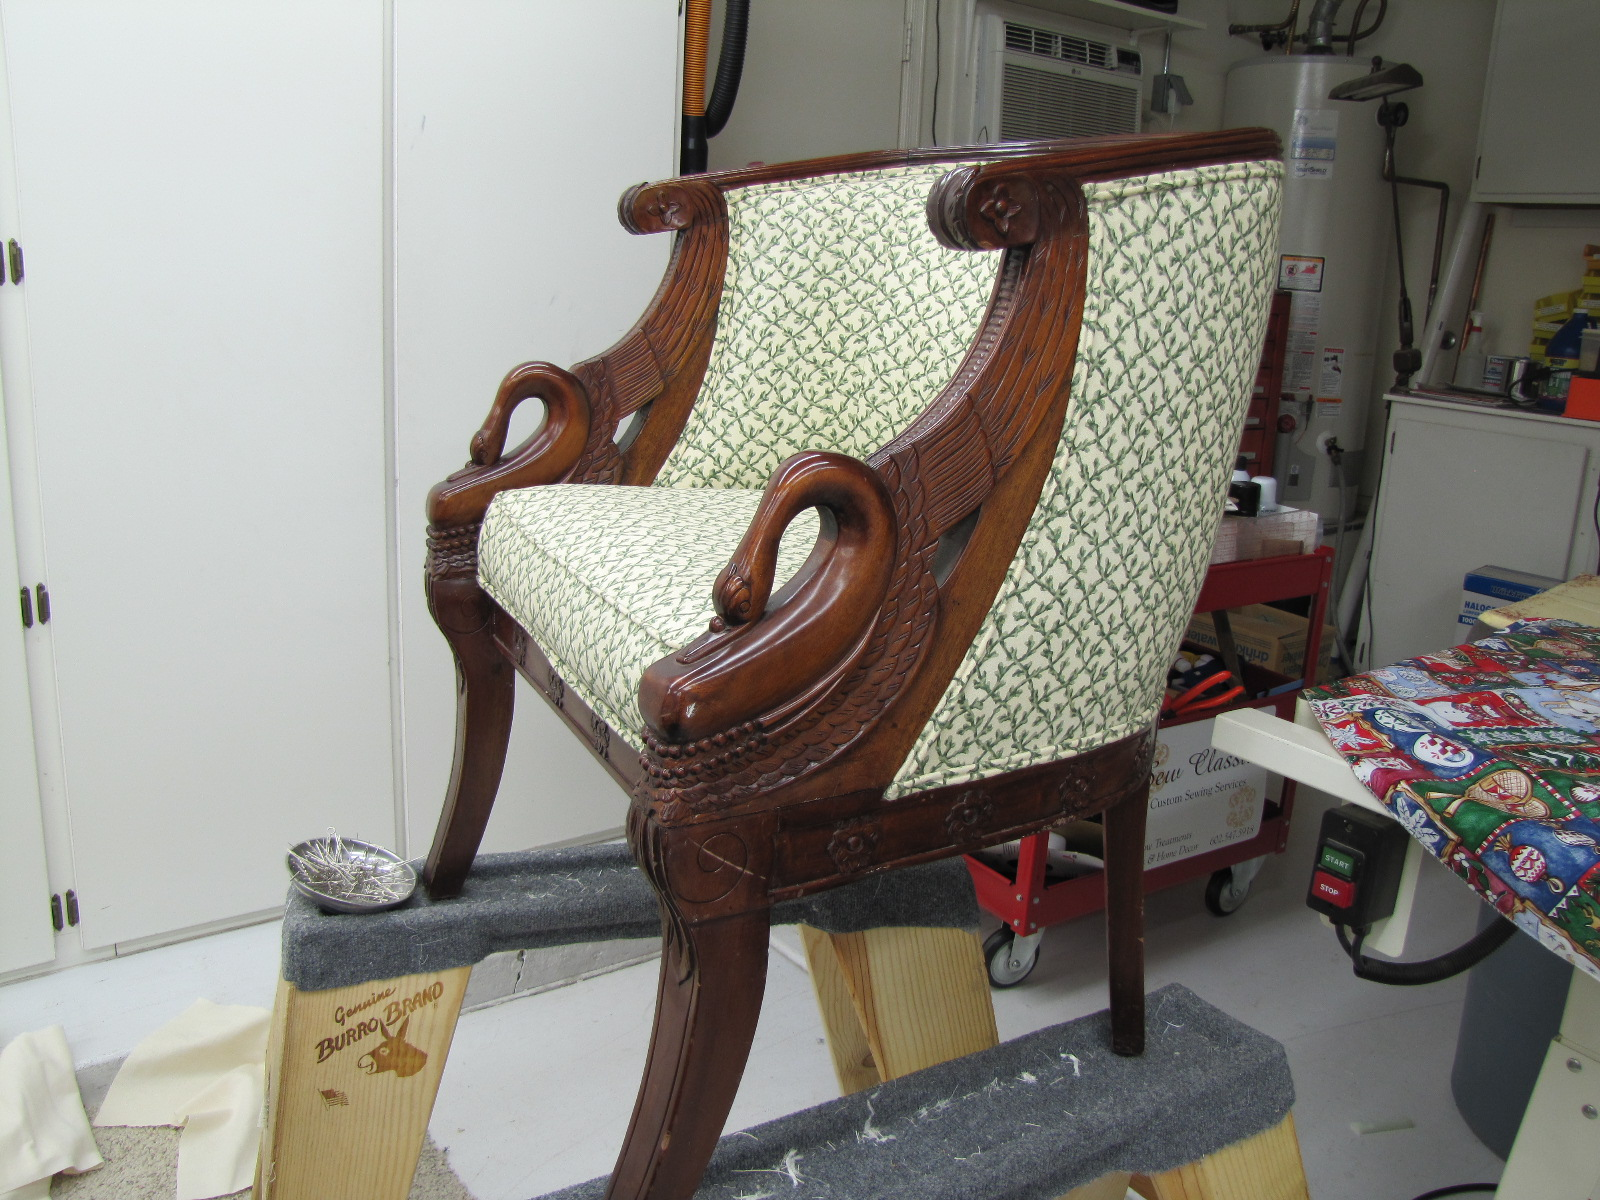 Before Swan Chair